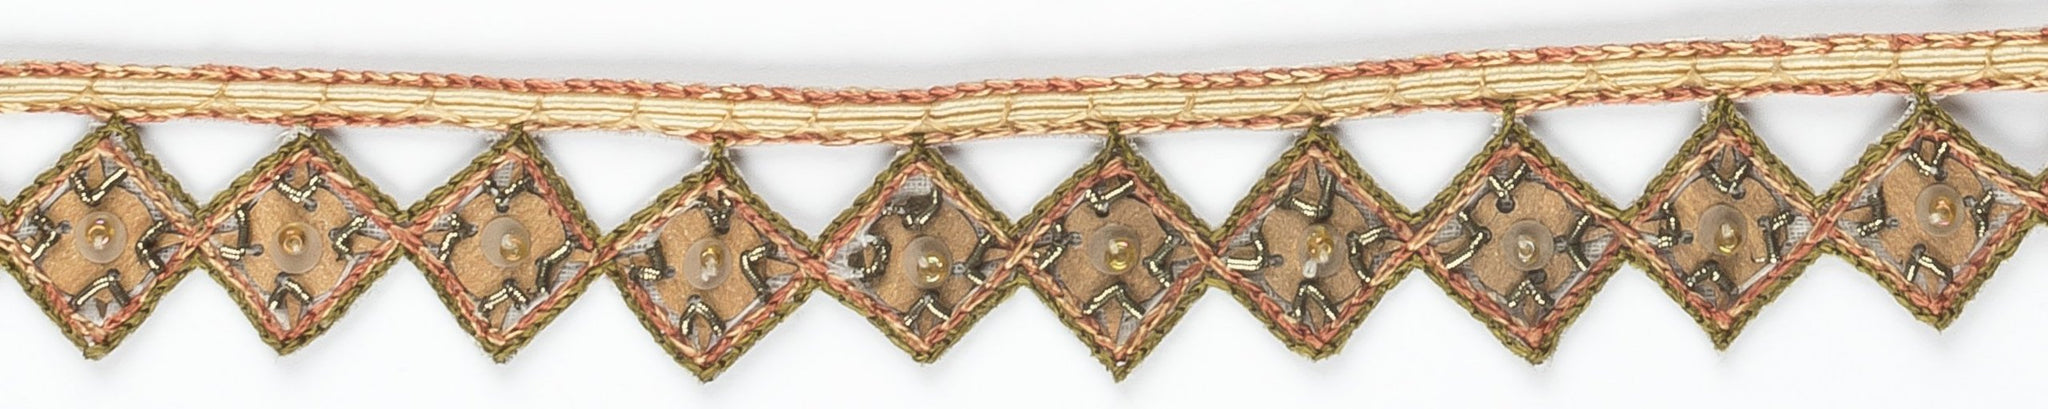 Diamond-shaped Indian Sequined Trim